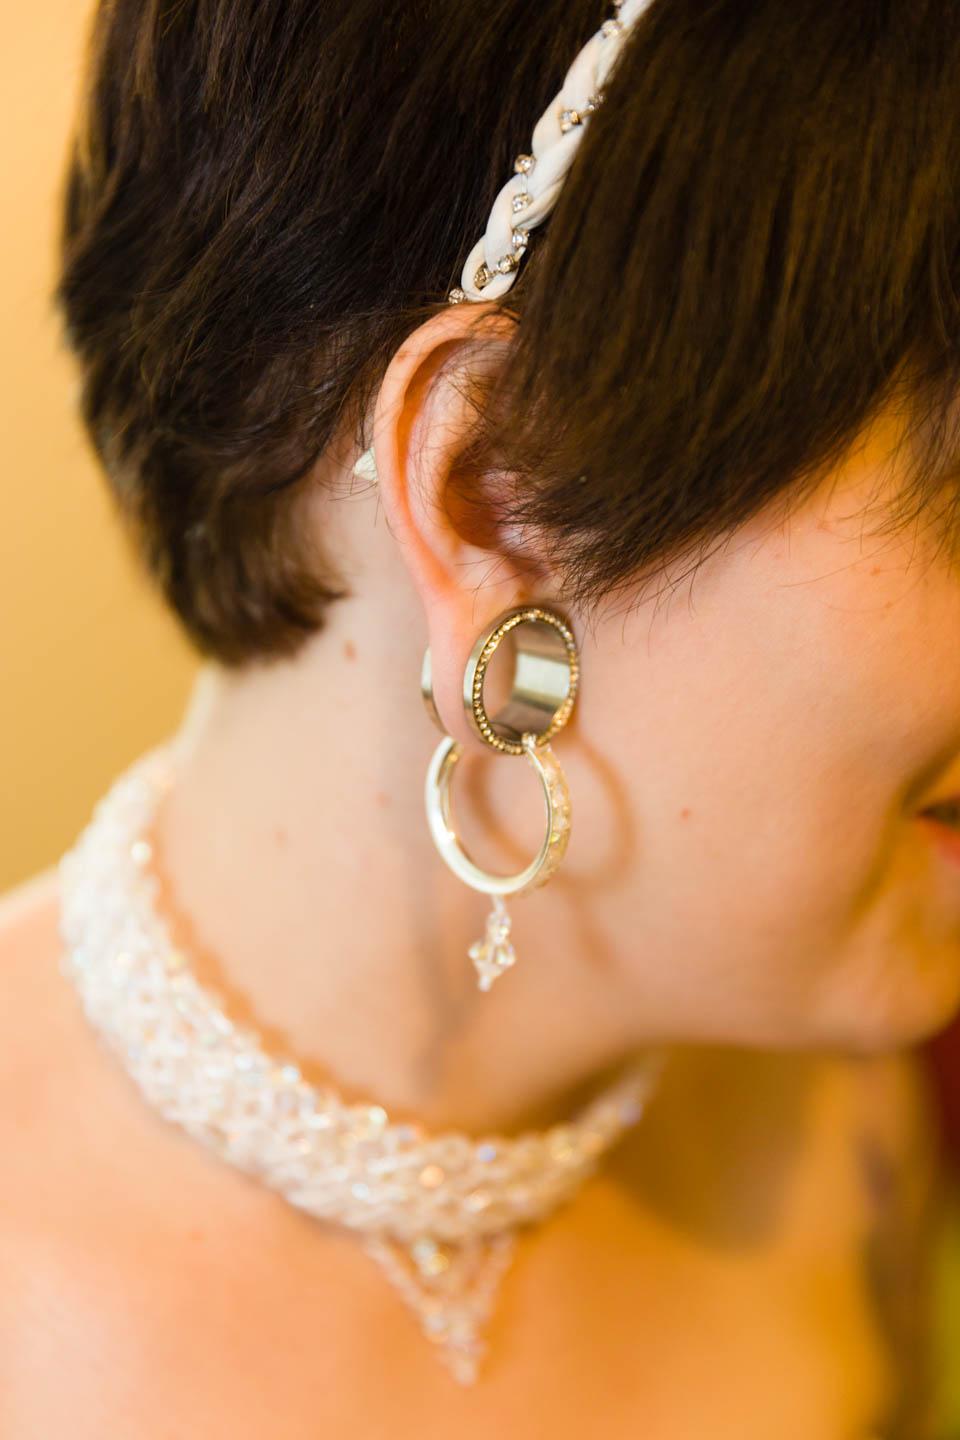 Bride's gauged earrings